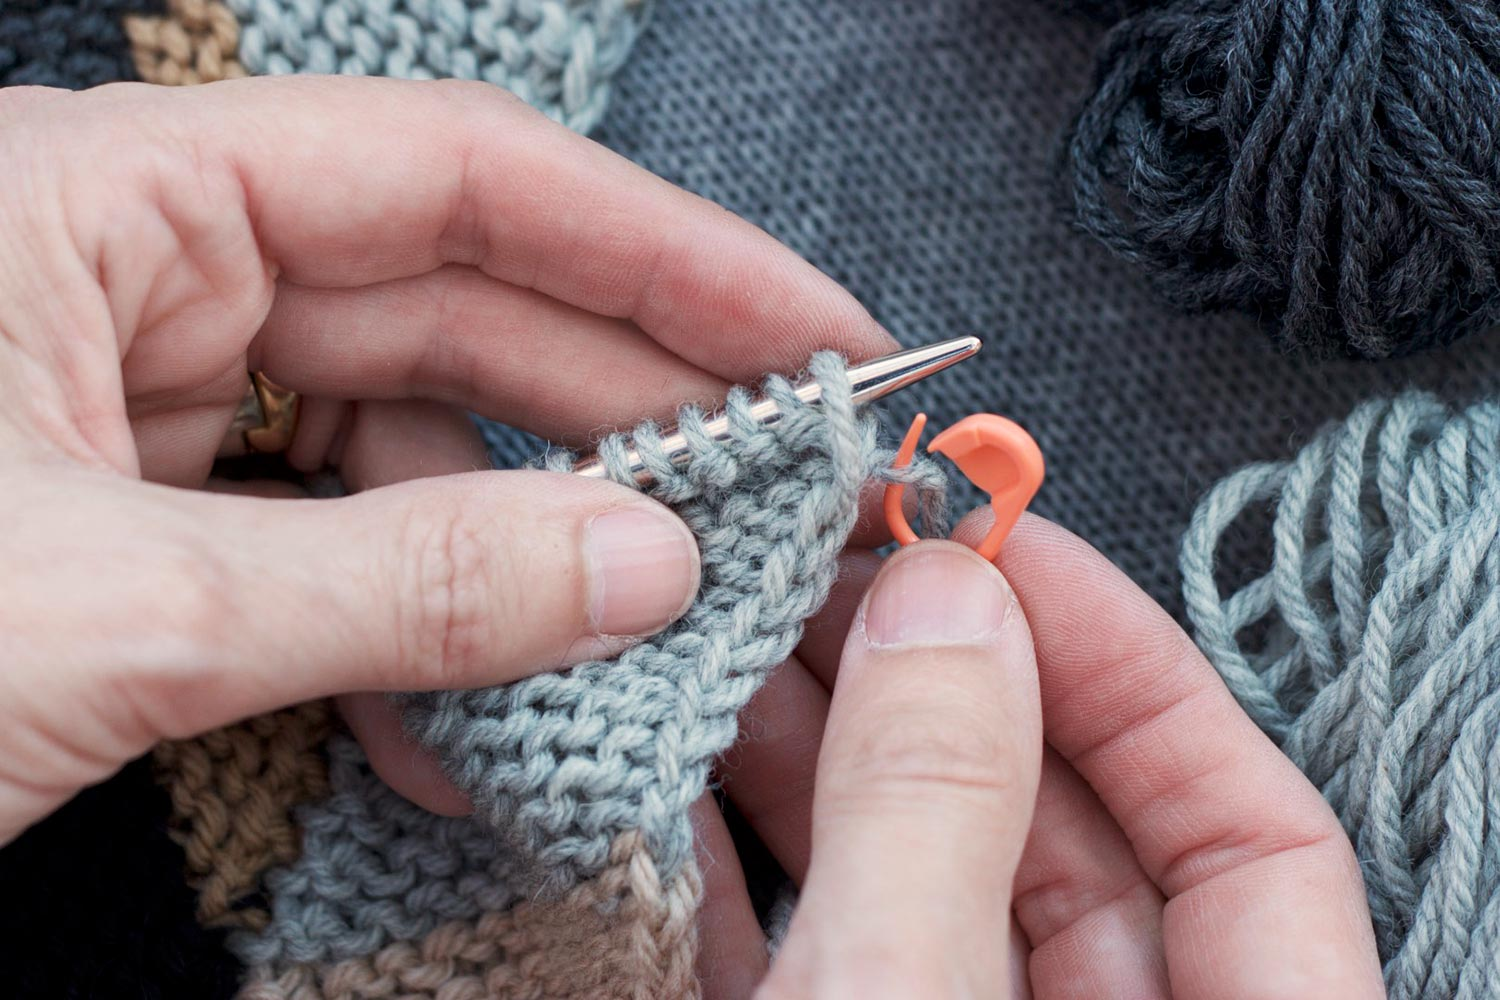 Left hand holding knitting on the needle and right hand holding a locking stitch marker that's piercing the working yarn next to the last stitch worked.